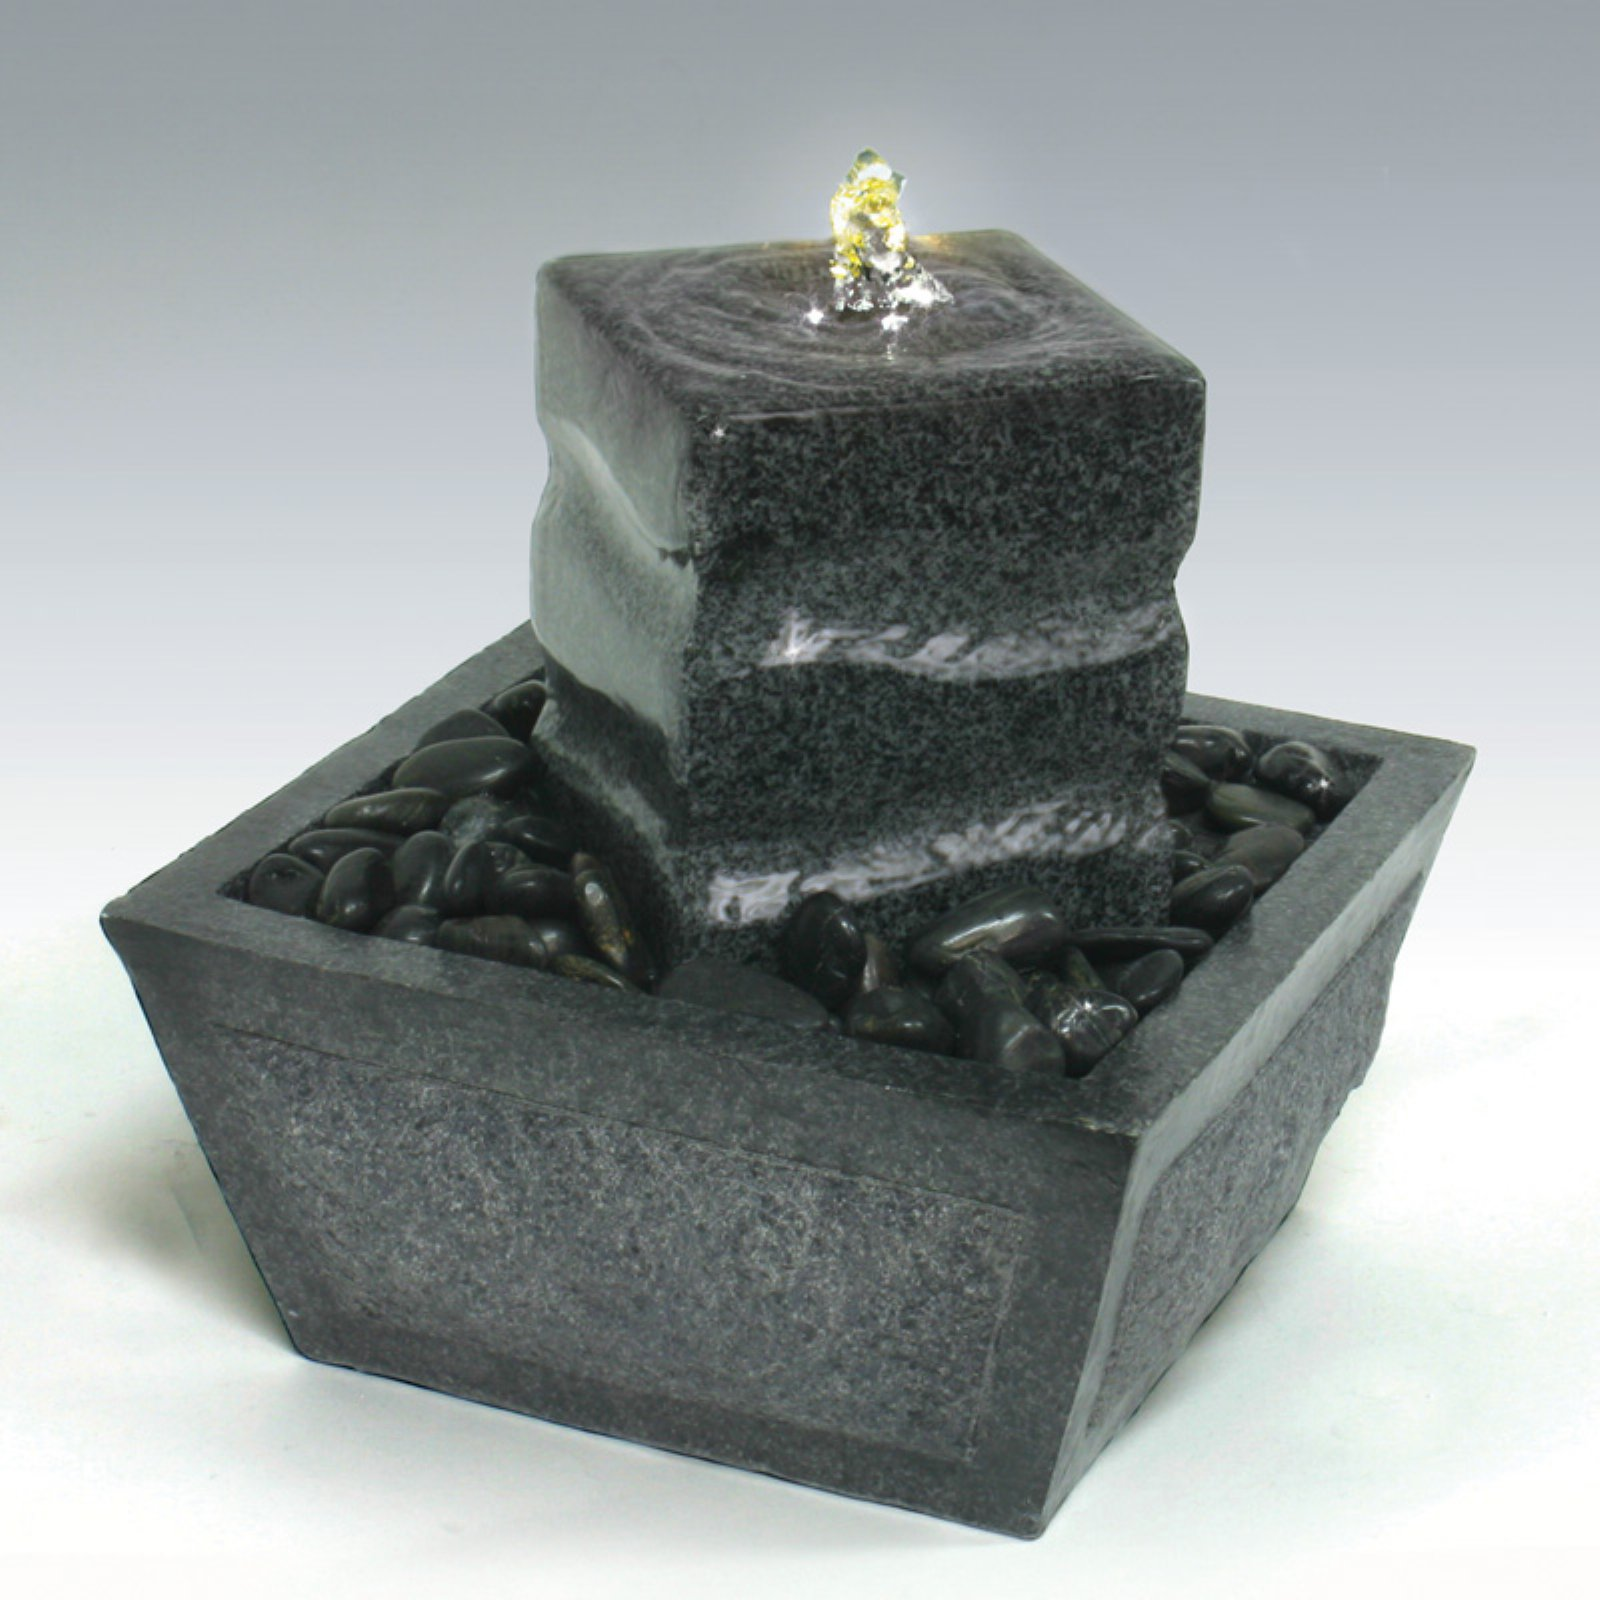 Algreen Illuminated Relaxation Outdoor Fountain with Granite Pillar and Natural Stones - Gray